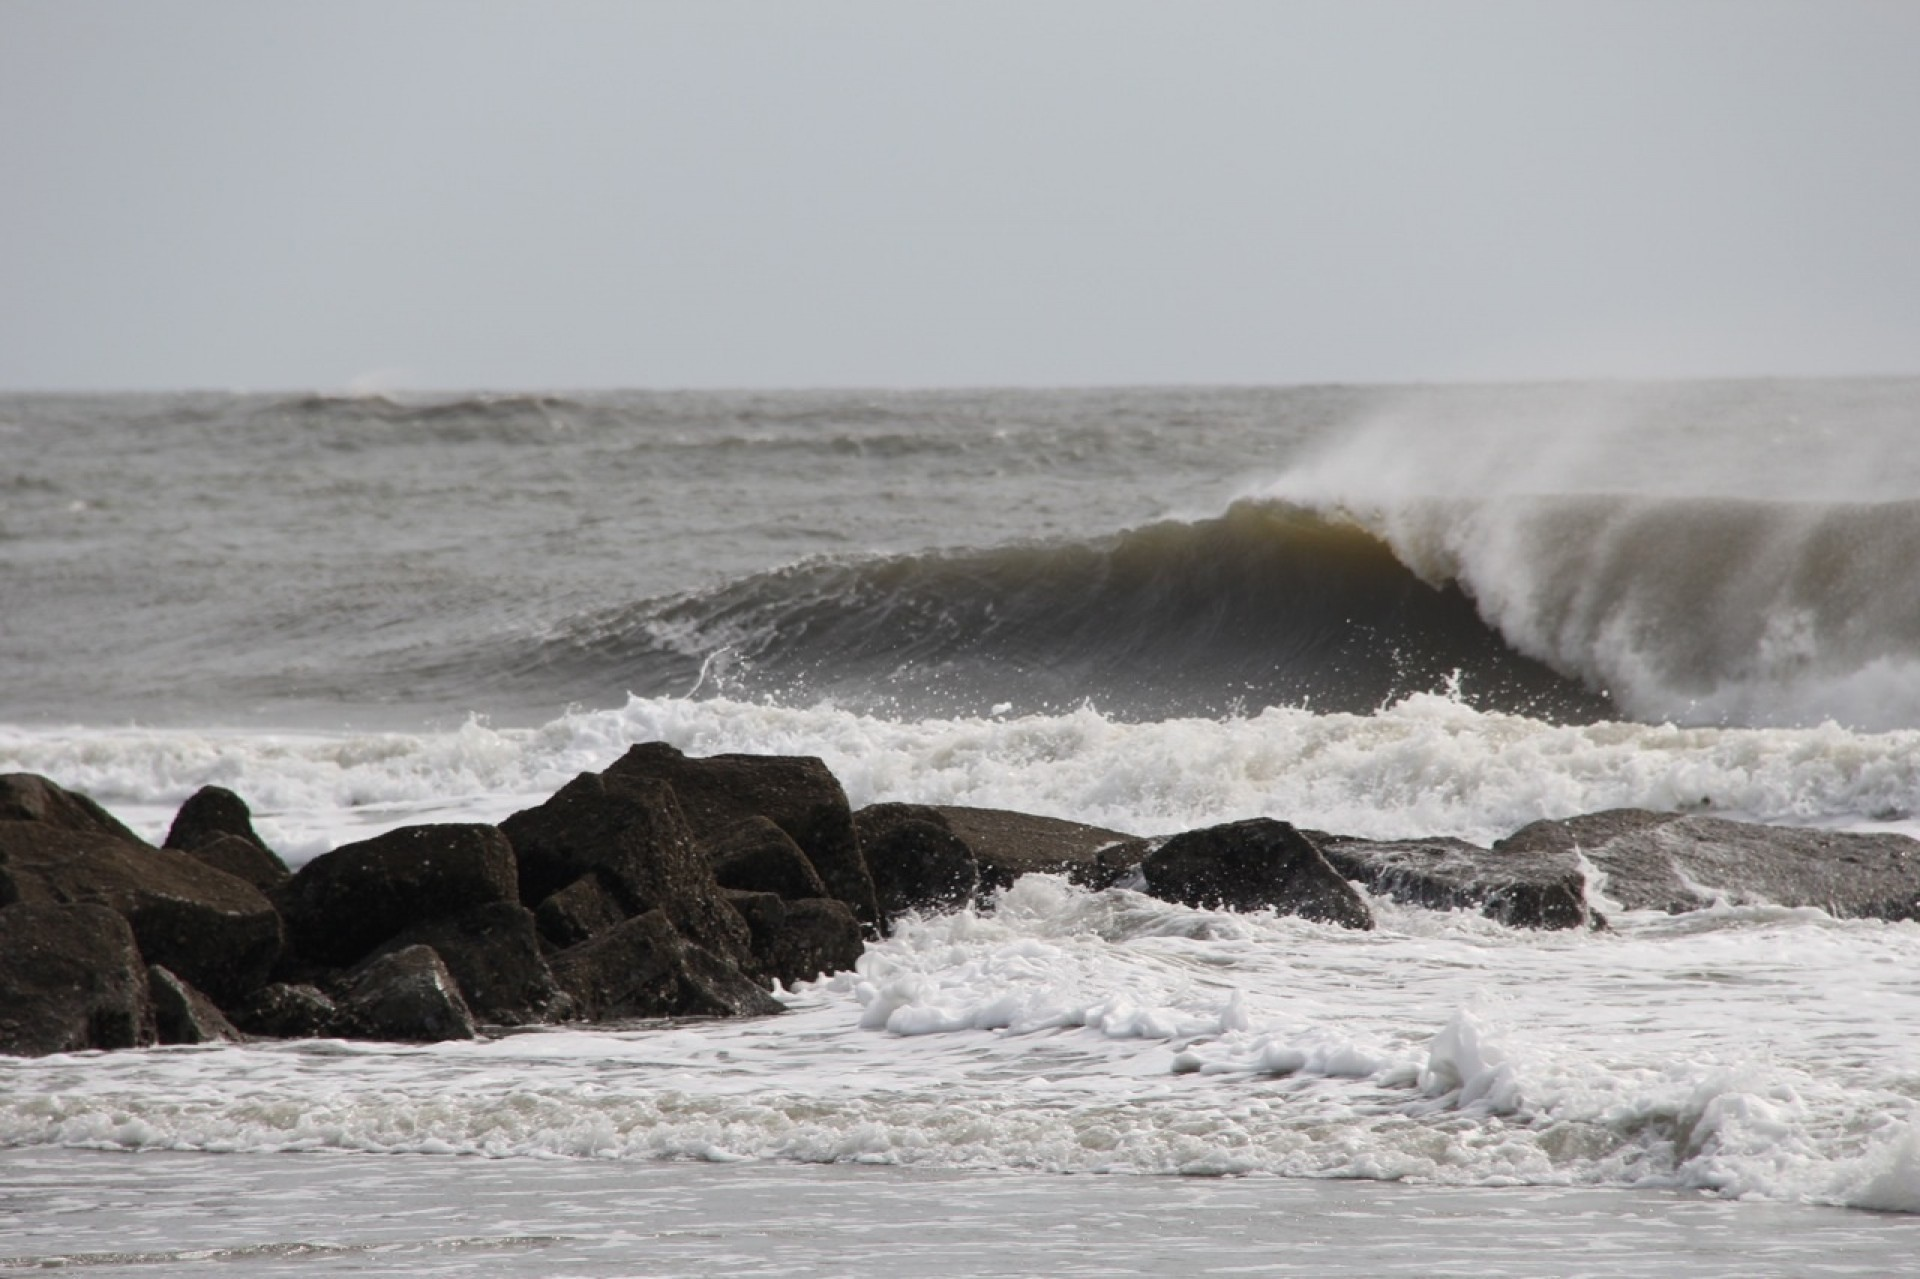 Mike Chlala's photo of The Washout